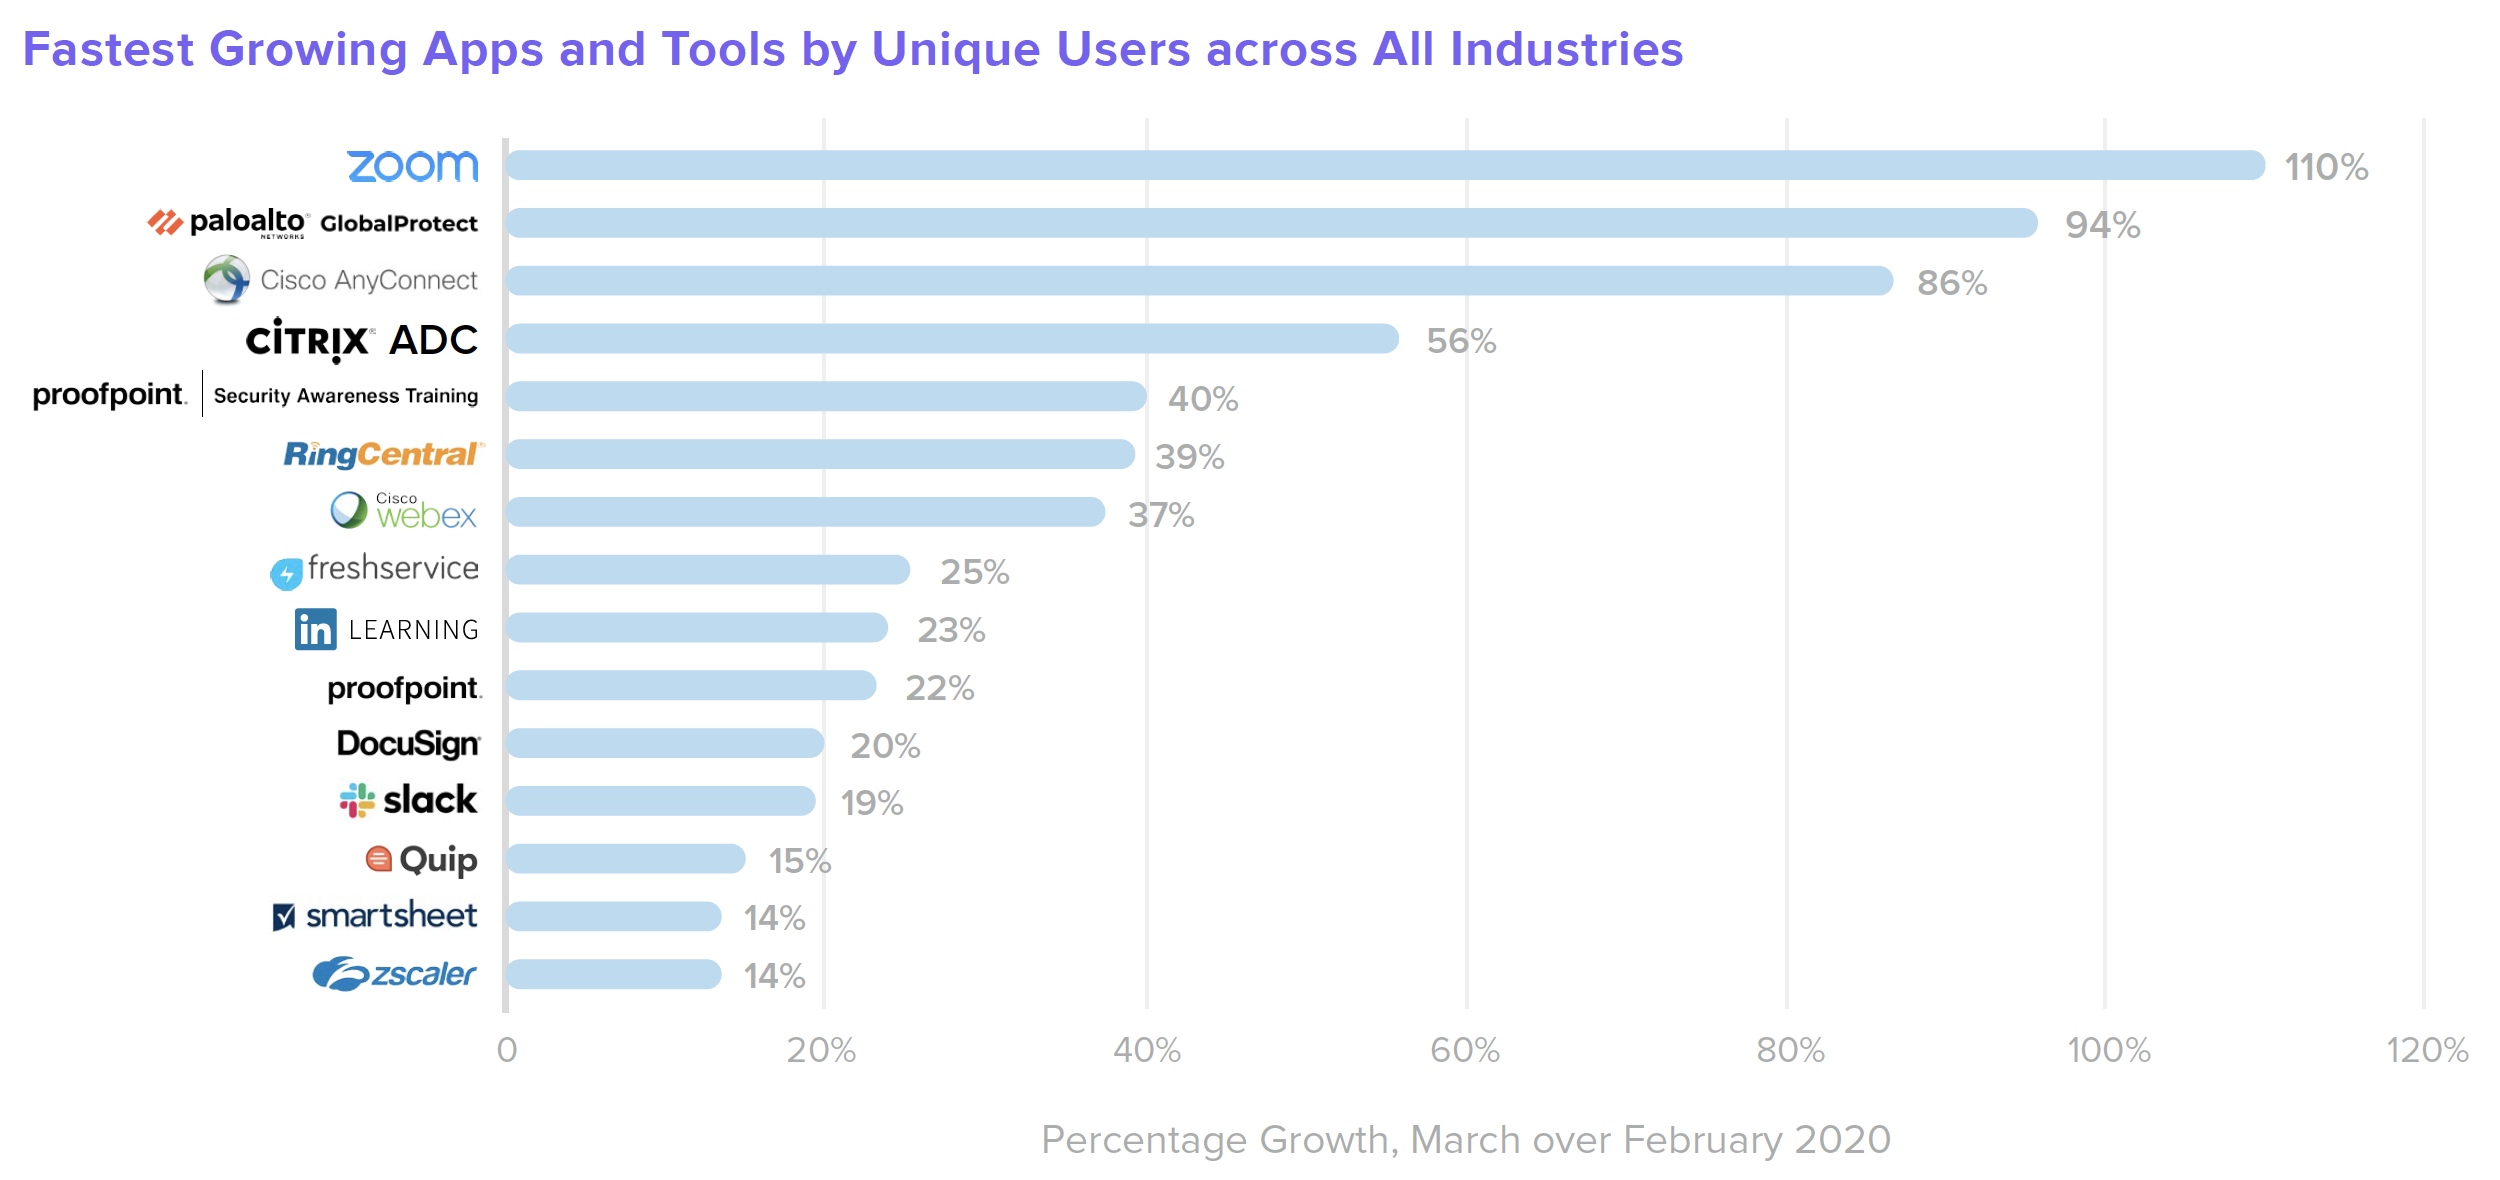 B W Finance Fastest Growing Apps and Tools by Unique Users across All Industries